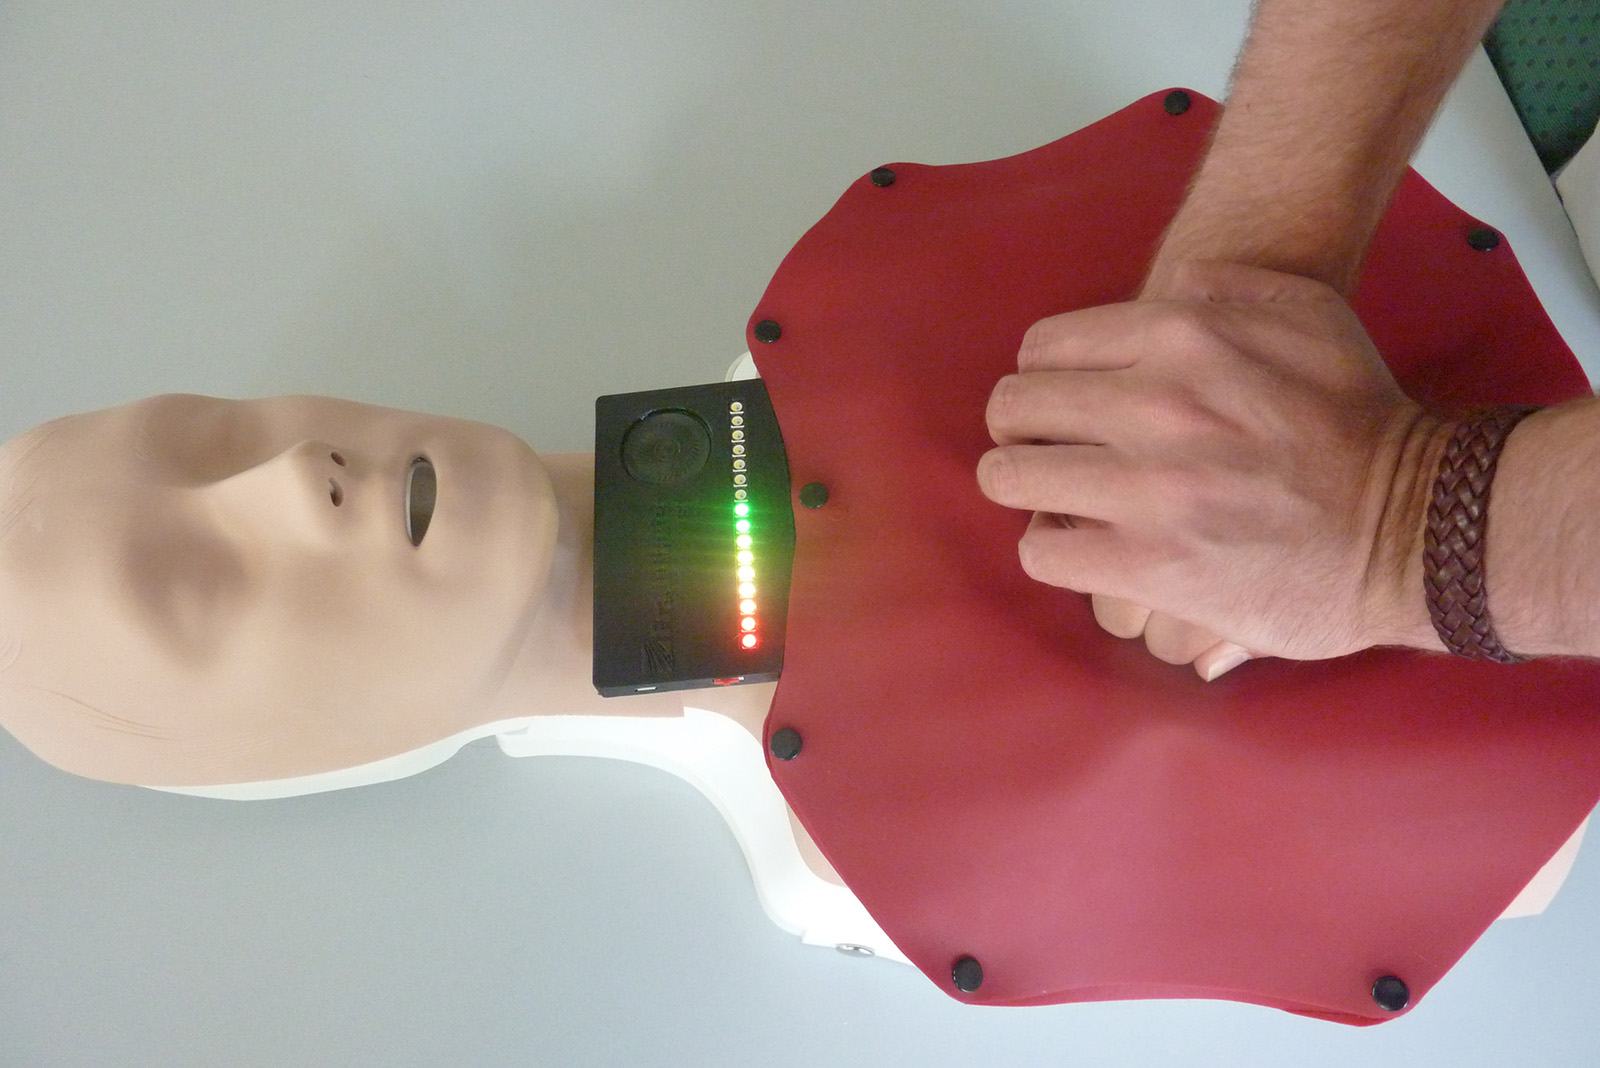 Pressure-sensing chest mat guides users through CPR